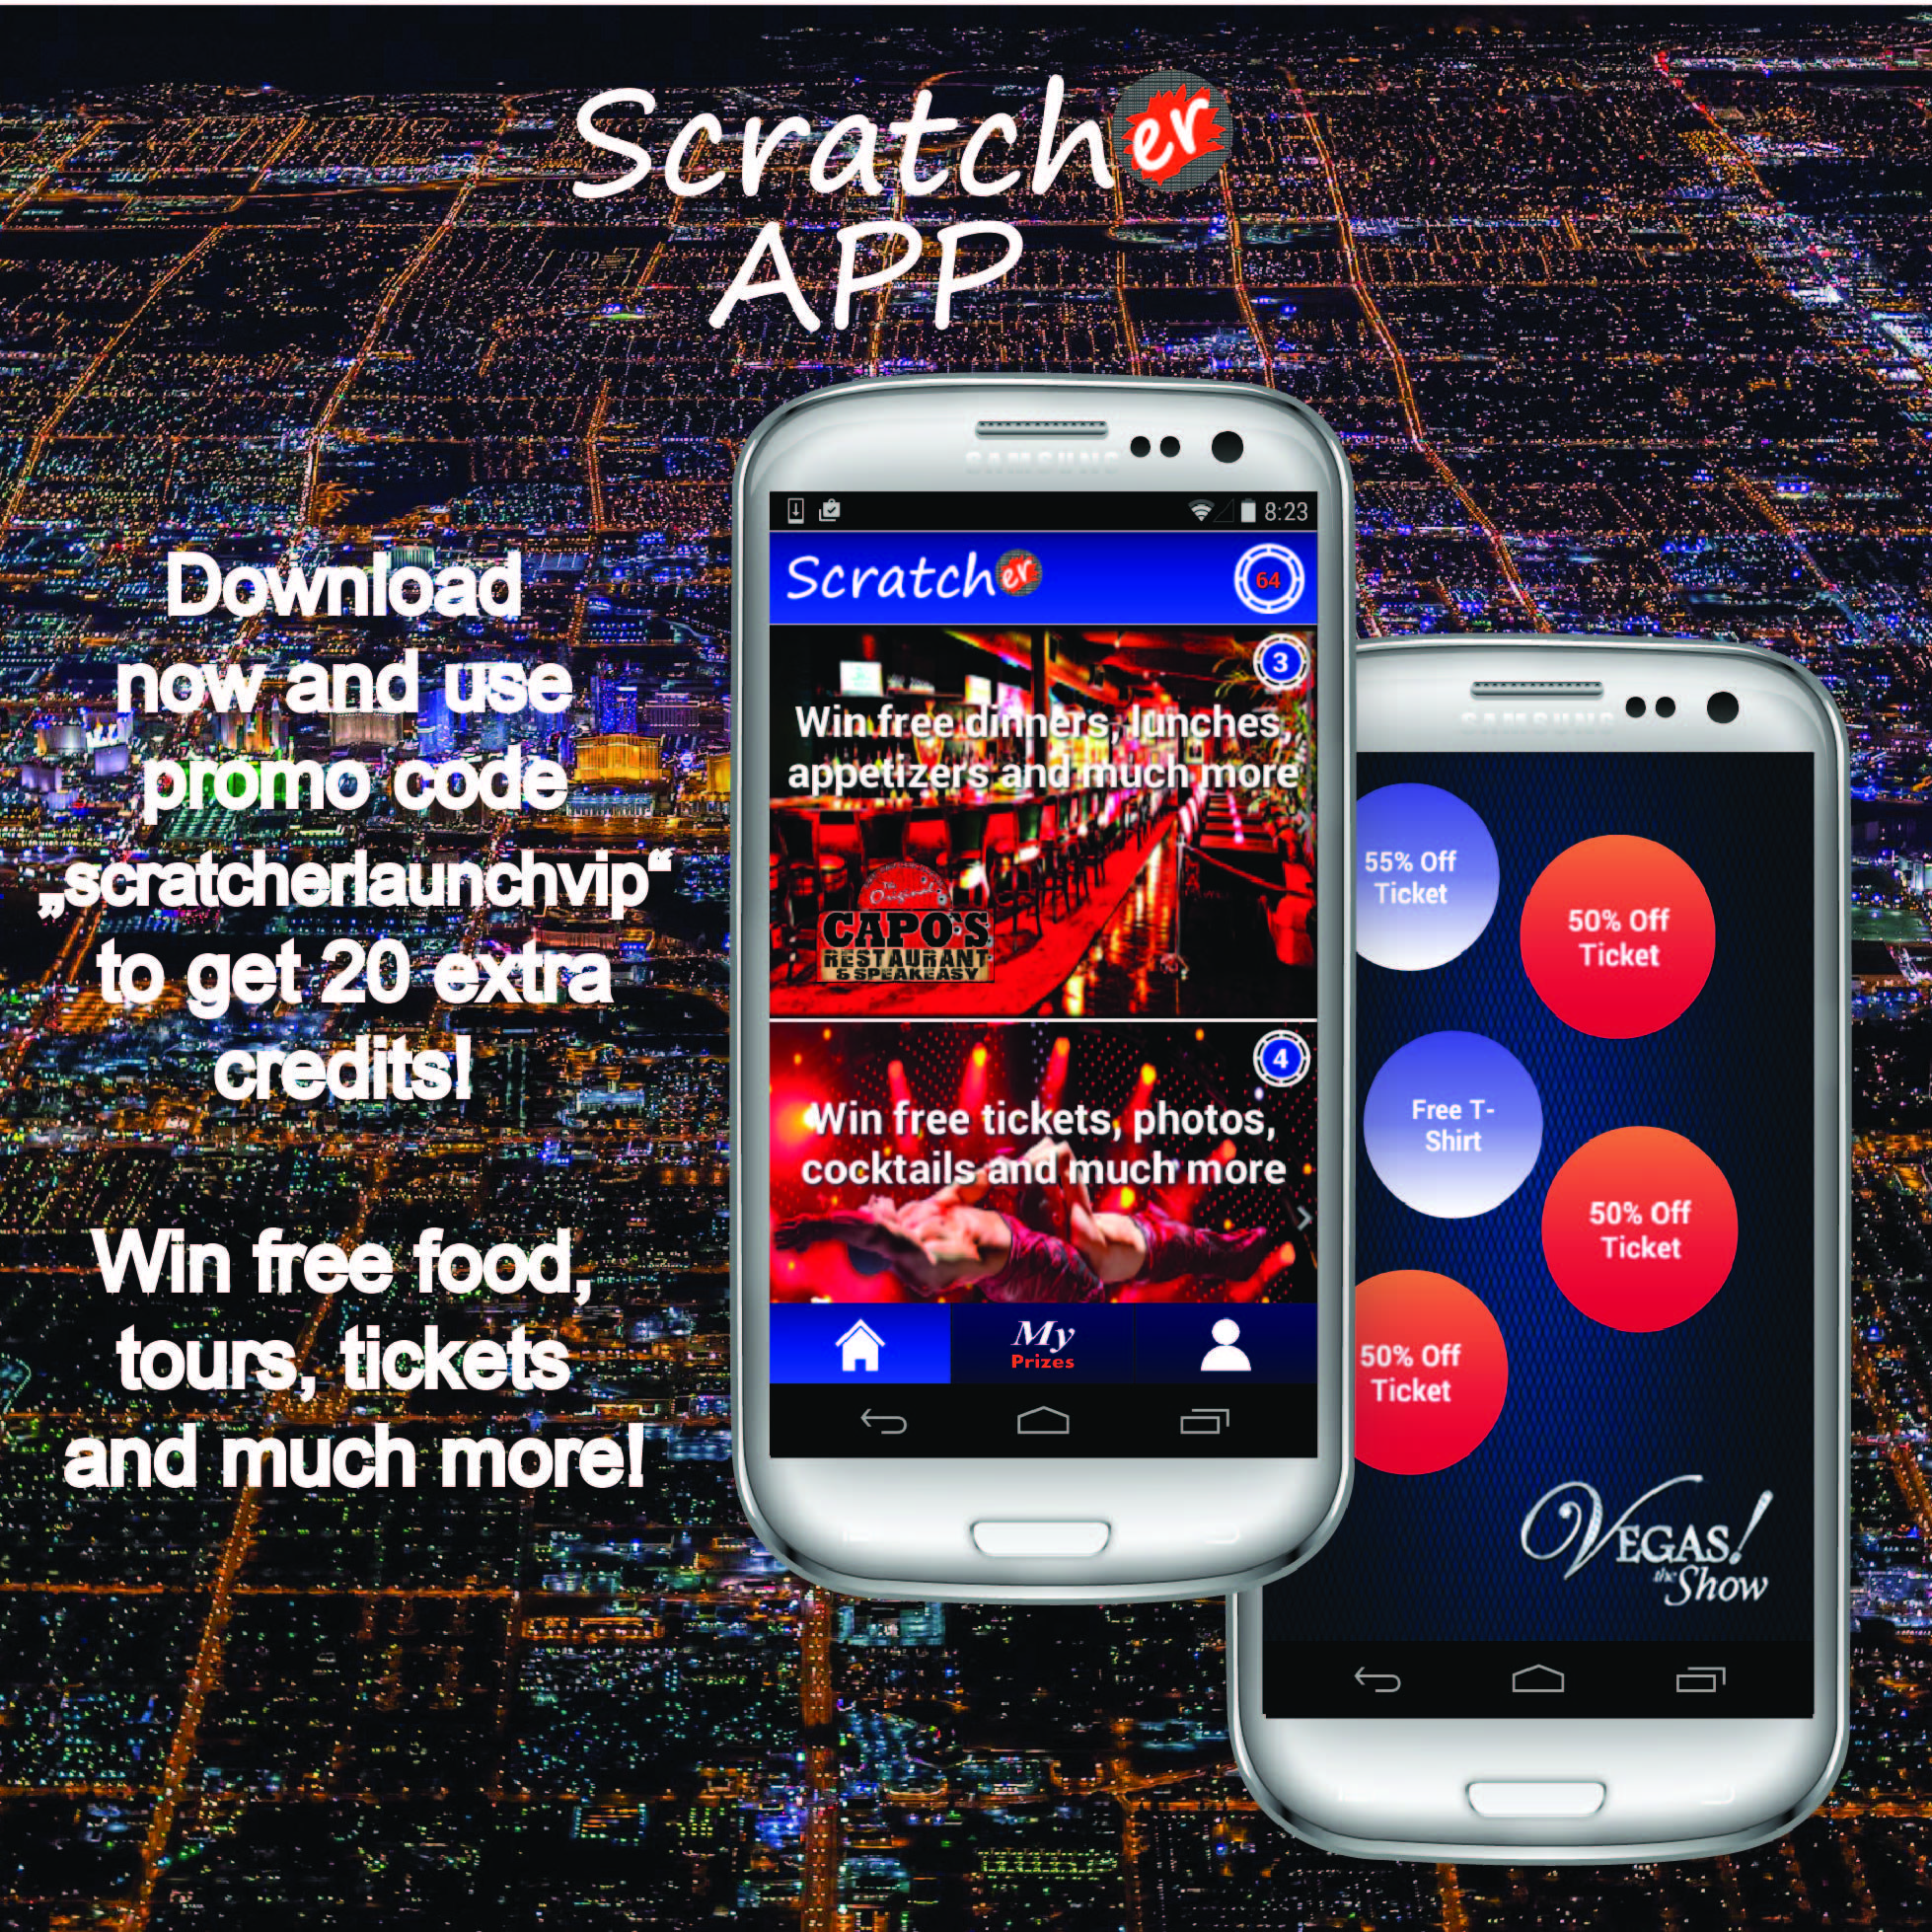 Check out our Mobile App SCRATCHER APP ! Its free and you